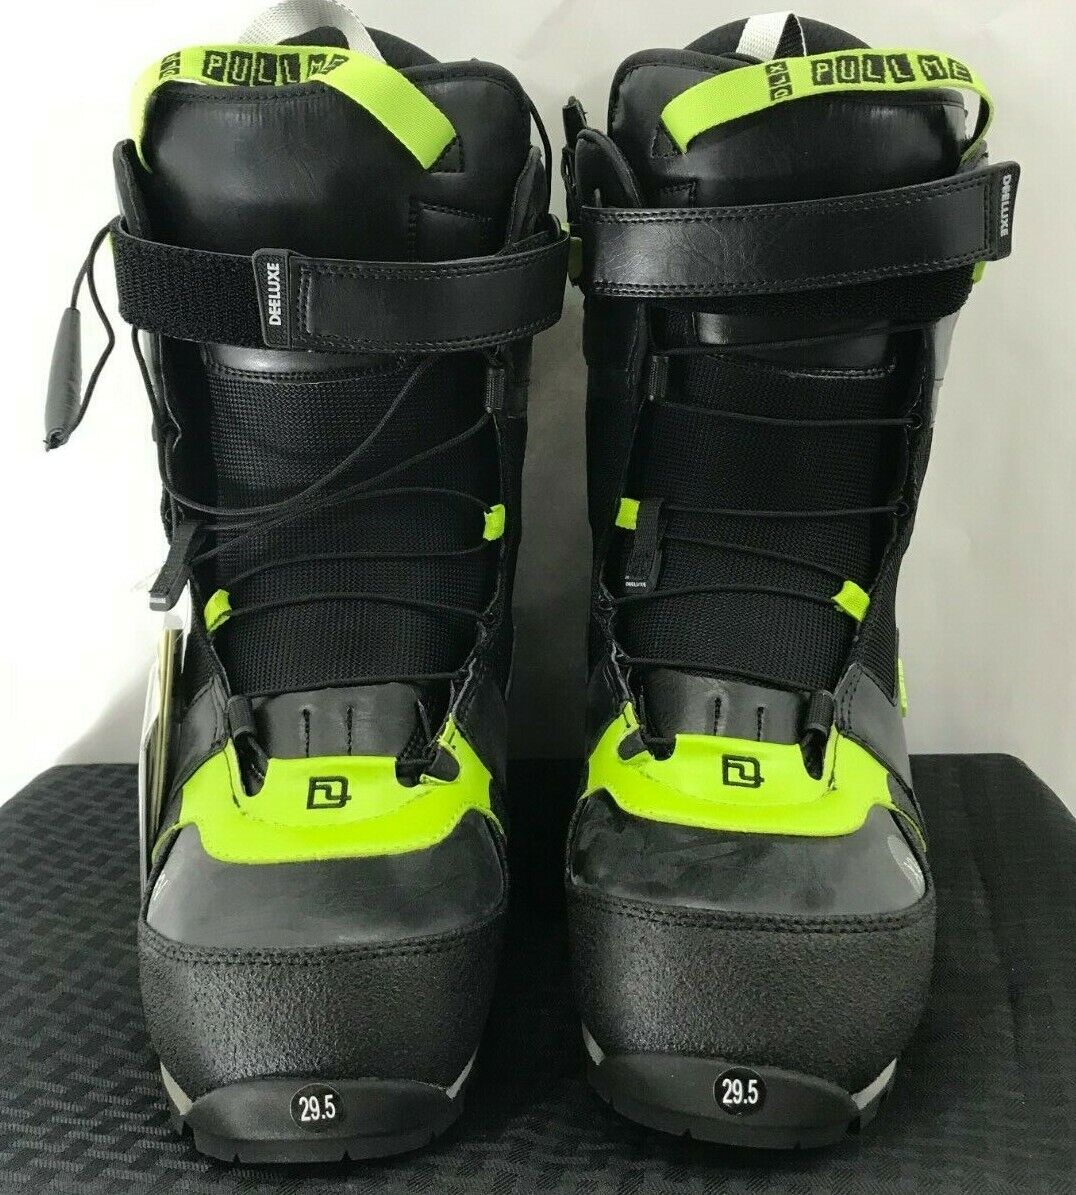 DELUXE SPARK XVTF SNOWBOARD BOOTS--- BRAND NEW      save 60% discount and fast shipping worldwide